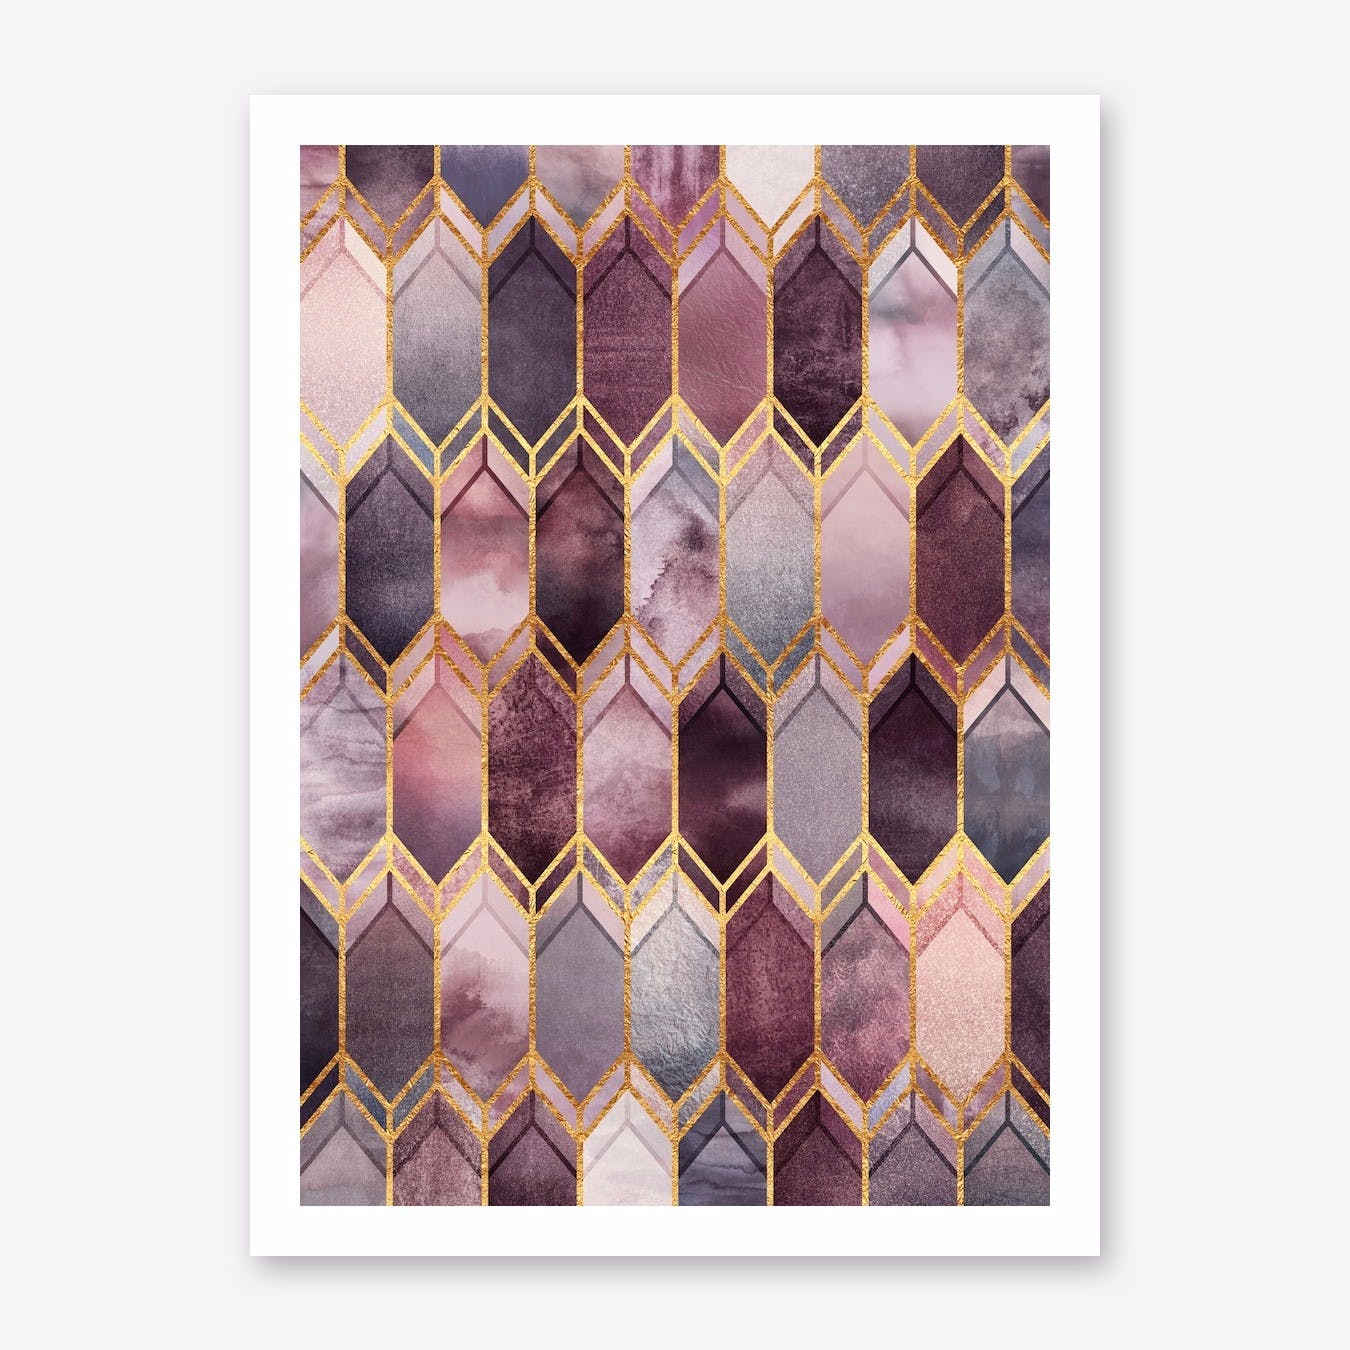 Dreamy Stained Glass Print